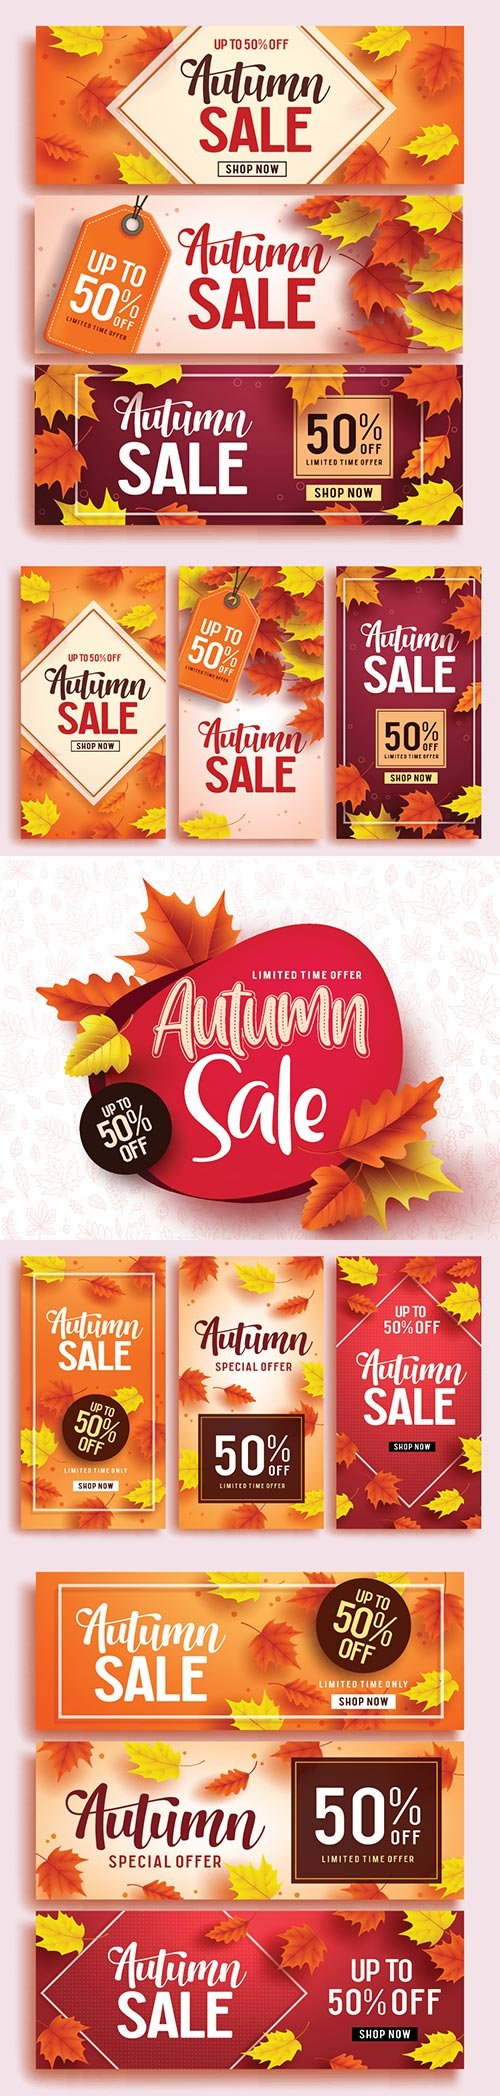 Autumn sale vector banner set template with colorful maple leaves background